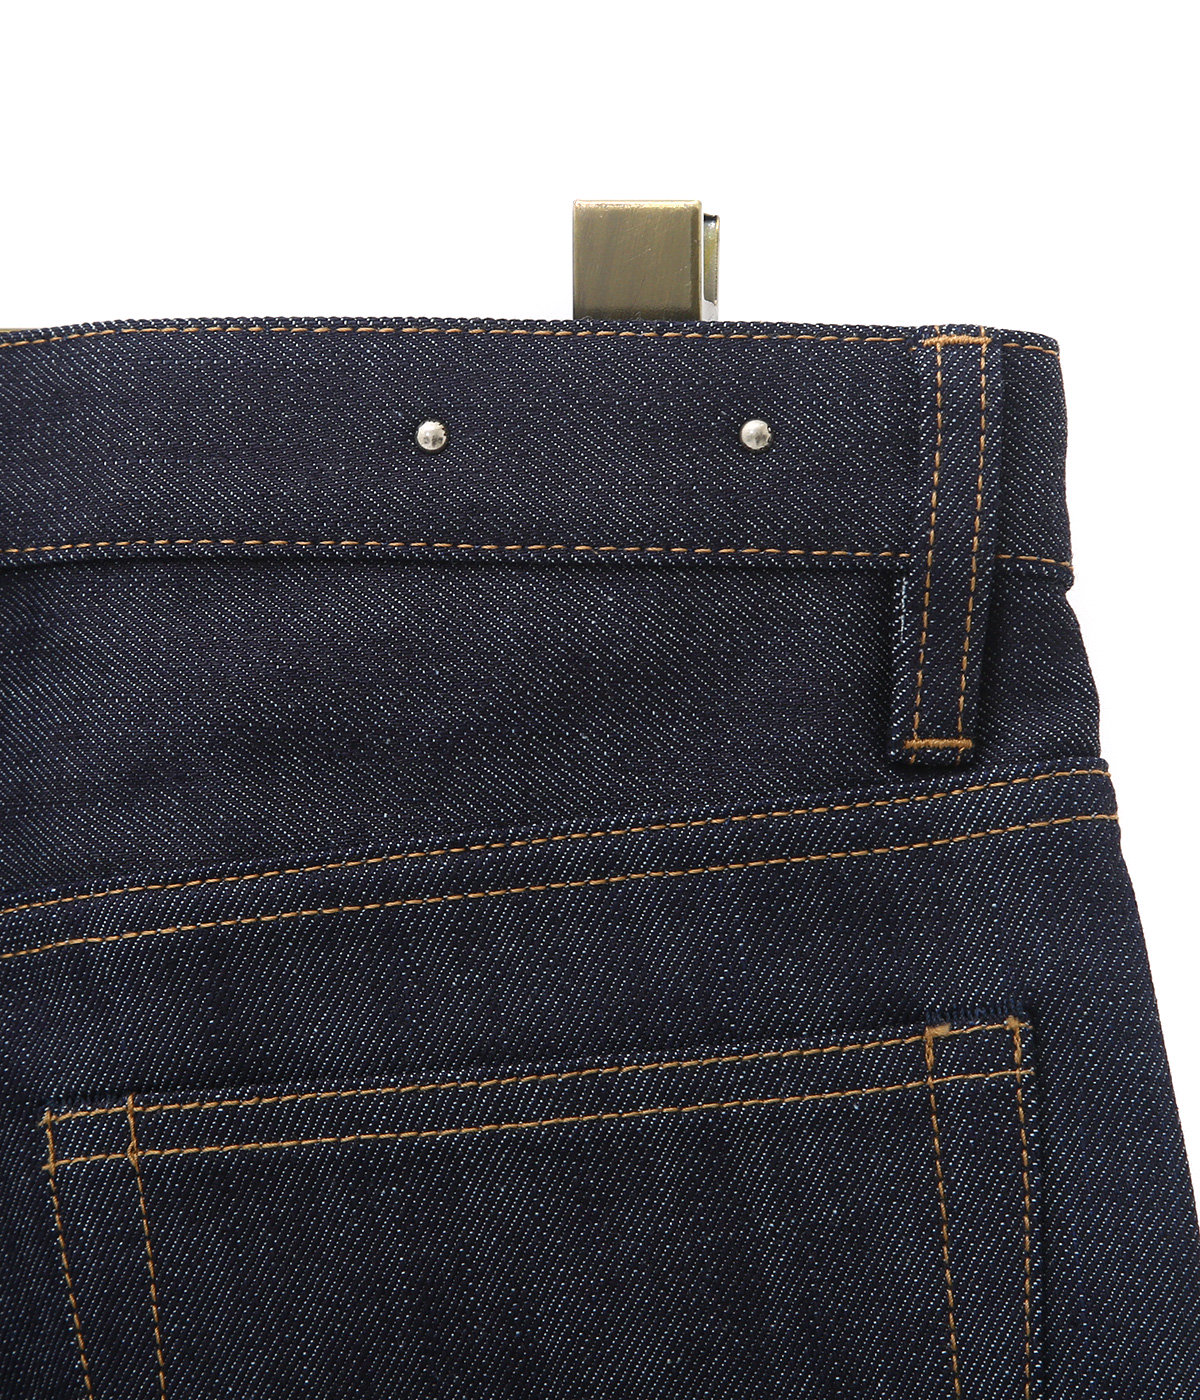 Standard Slim STR 5pocket RGD